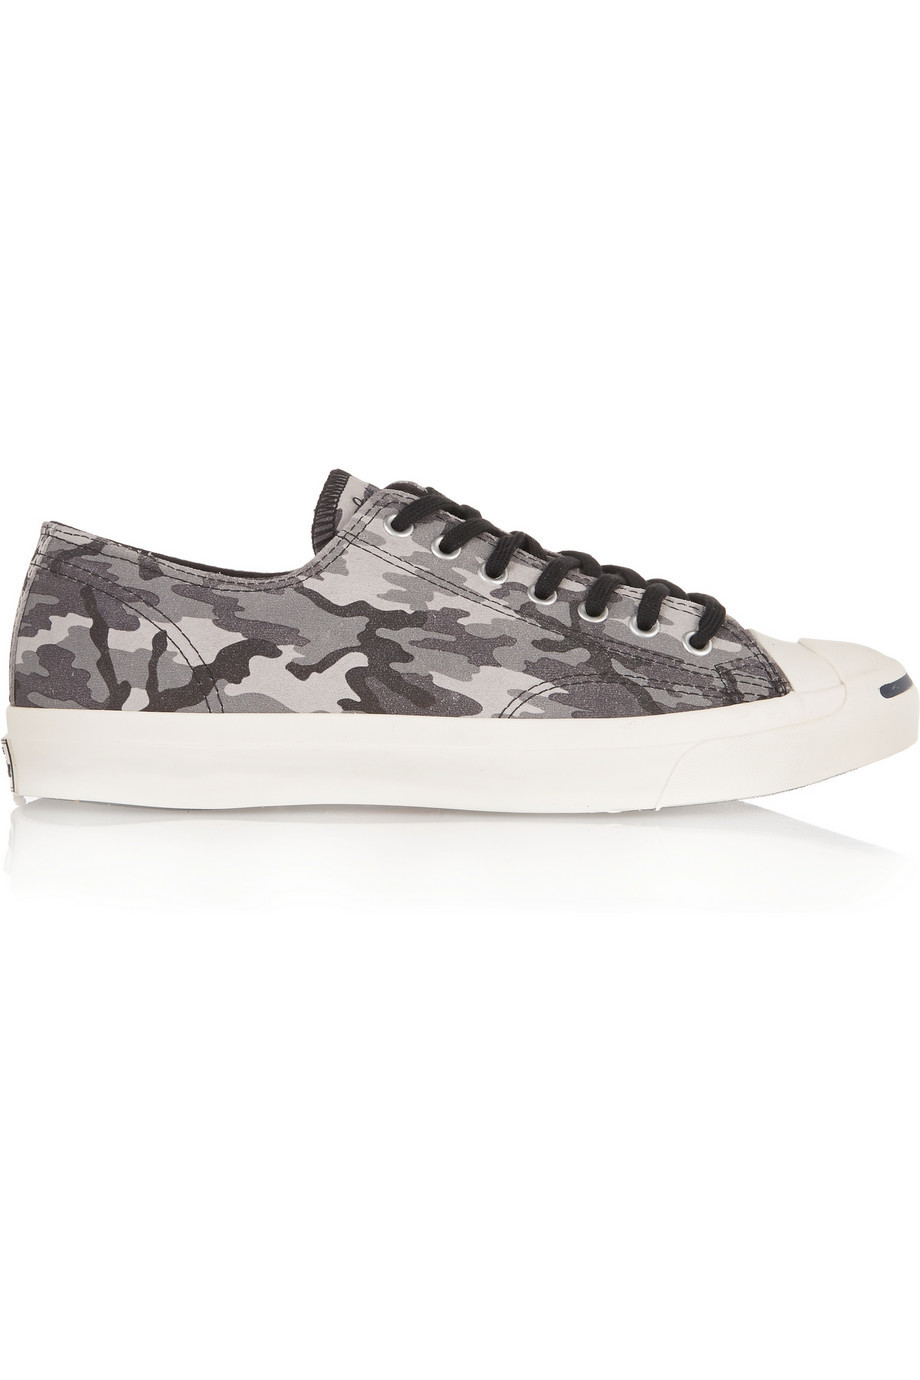 Jack Purcell Camouflage Print Canvas Sneakers Gray - secondary colour: charcoal; predominant colour: light grey; occasions: casual; material: fabric; heel height: flat; toe: round toe; style: trainers; finish: plain; pattern: camouflage; shoe detail: moulded soul; season: s/s 2015